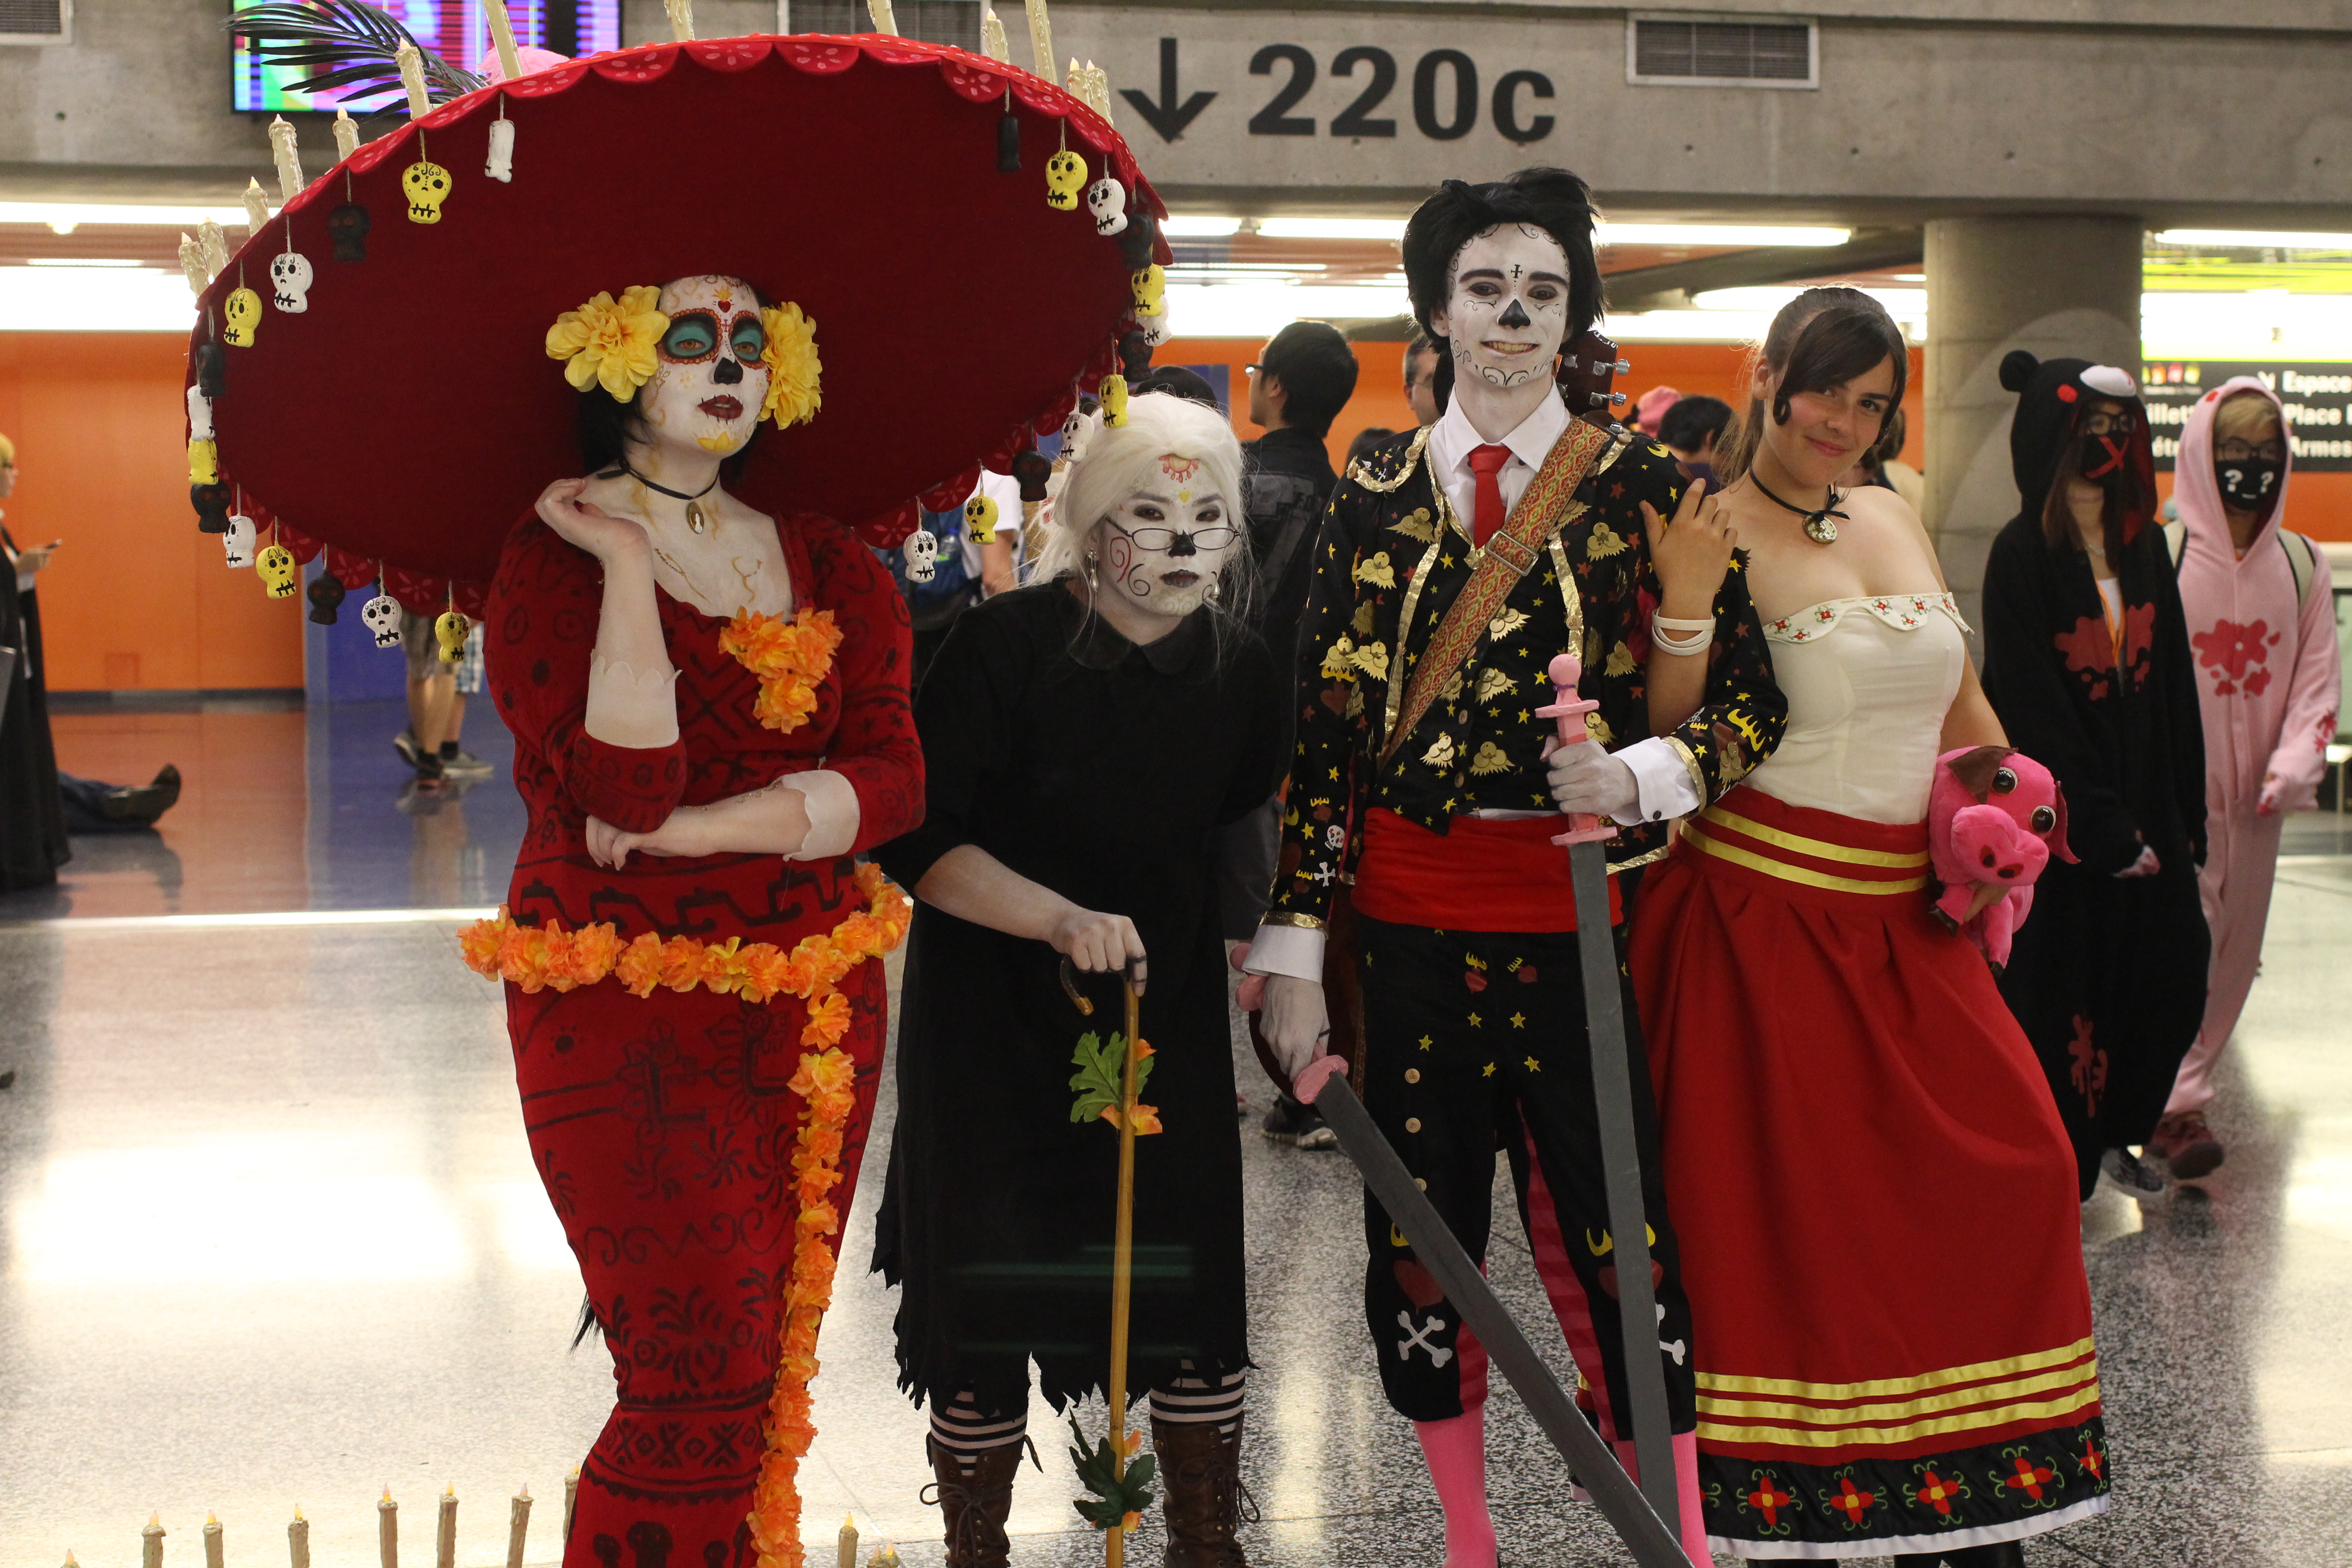 Book of Life group at Otakuthon 2015 by MaripierPhotographie